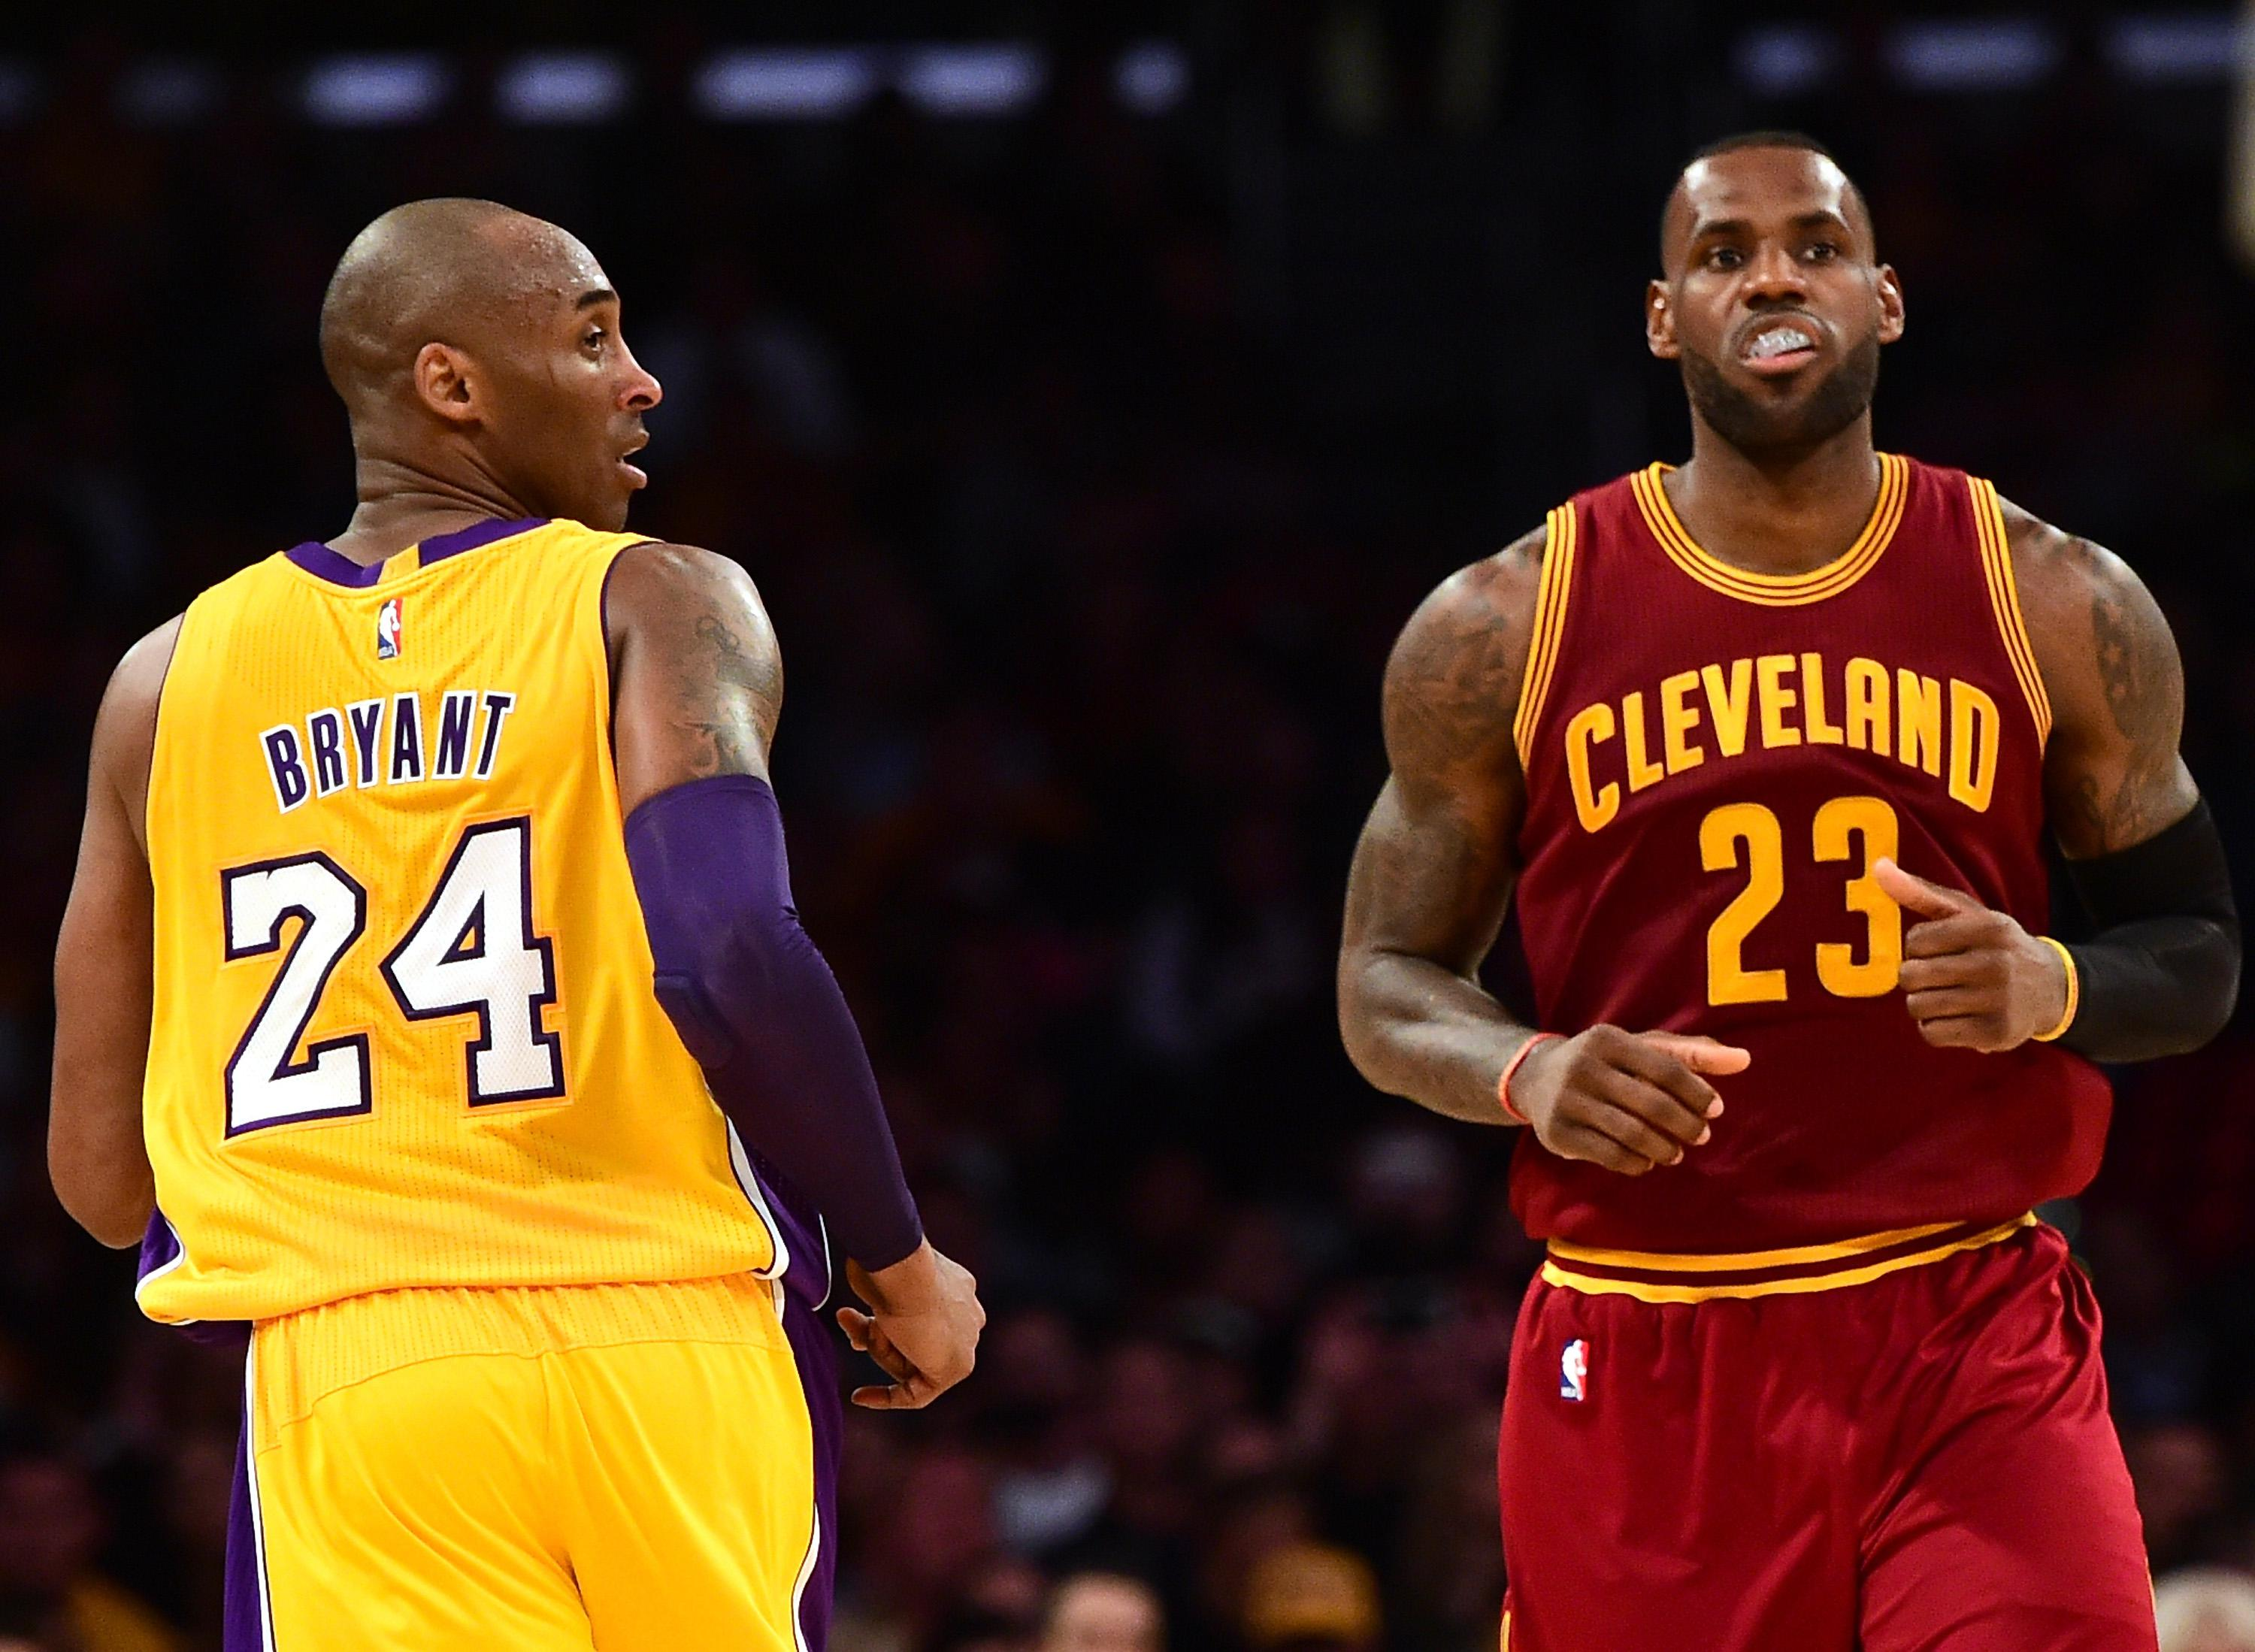 LeBron James of the Cleveland Cavaliers and Kobe Bryant #24 of the Los Angeles Lakers match up.